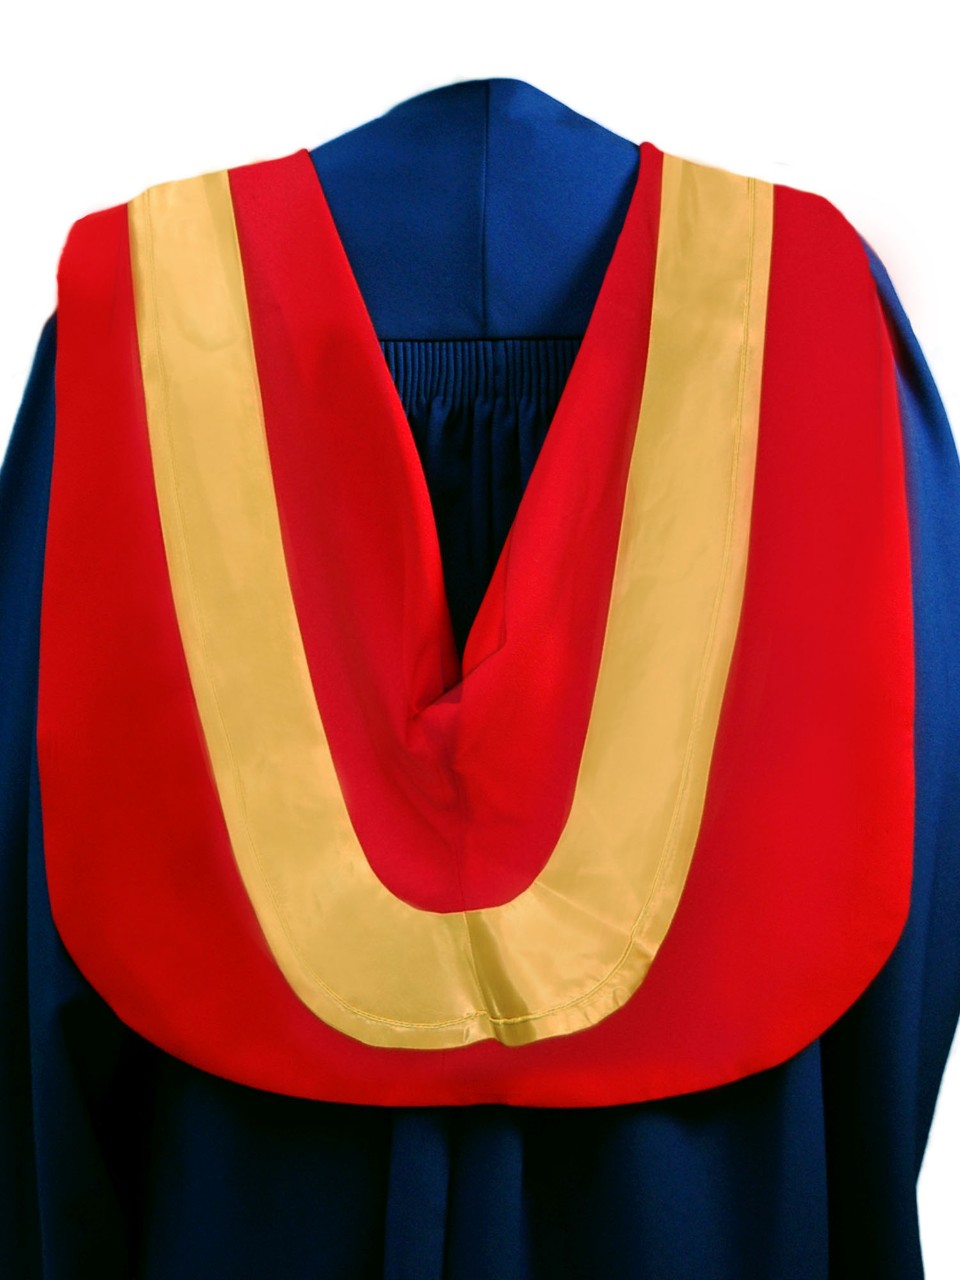 The Master of Science hood is red with wide gold border and gold cording